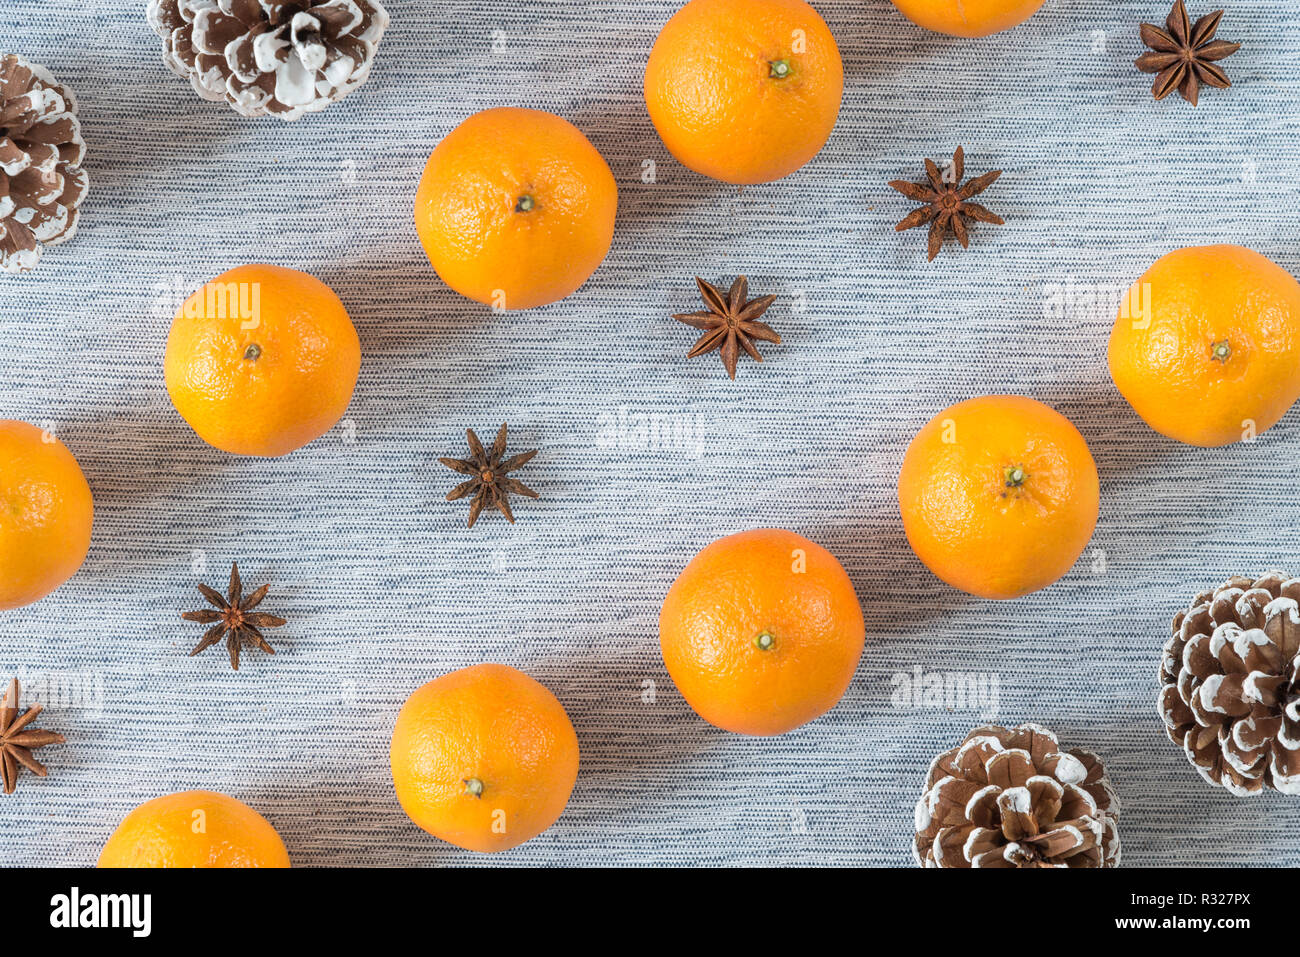 Diagonal rows of oranges, star anise, and pinecones on grey background - Stock Image